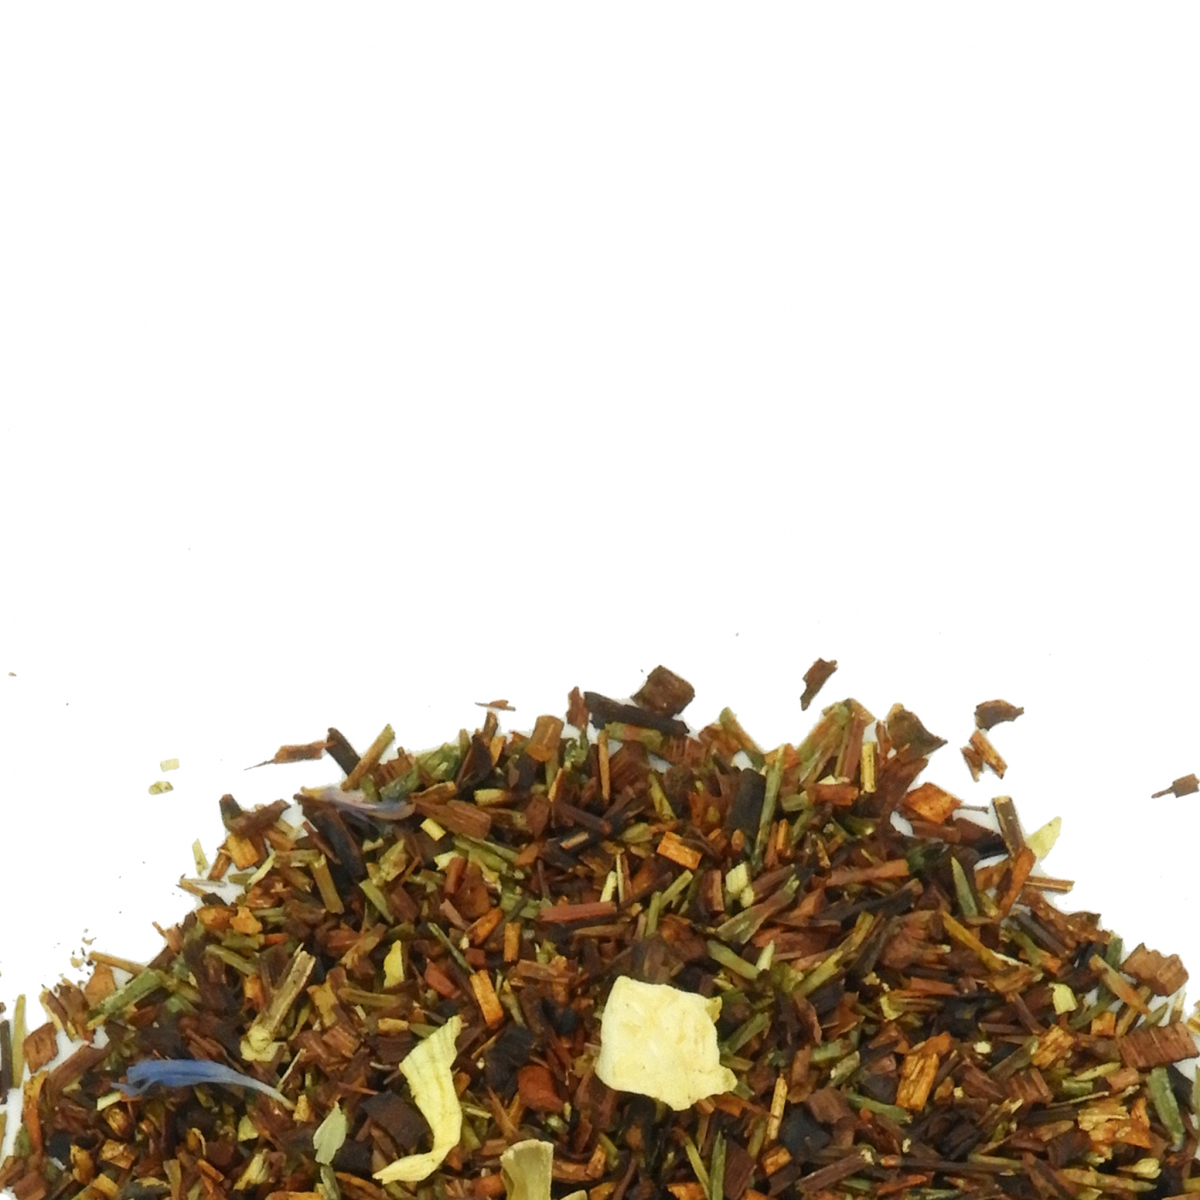 Beaches] Herbal teas to avoid with high blood pressure